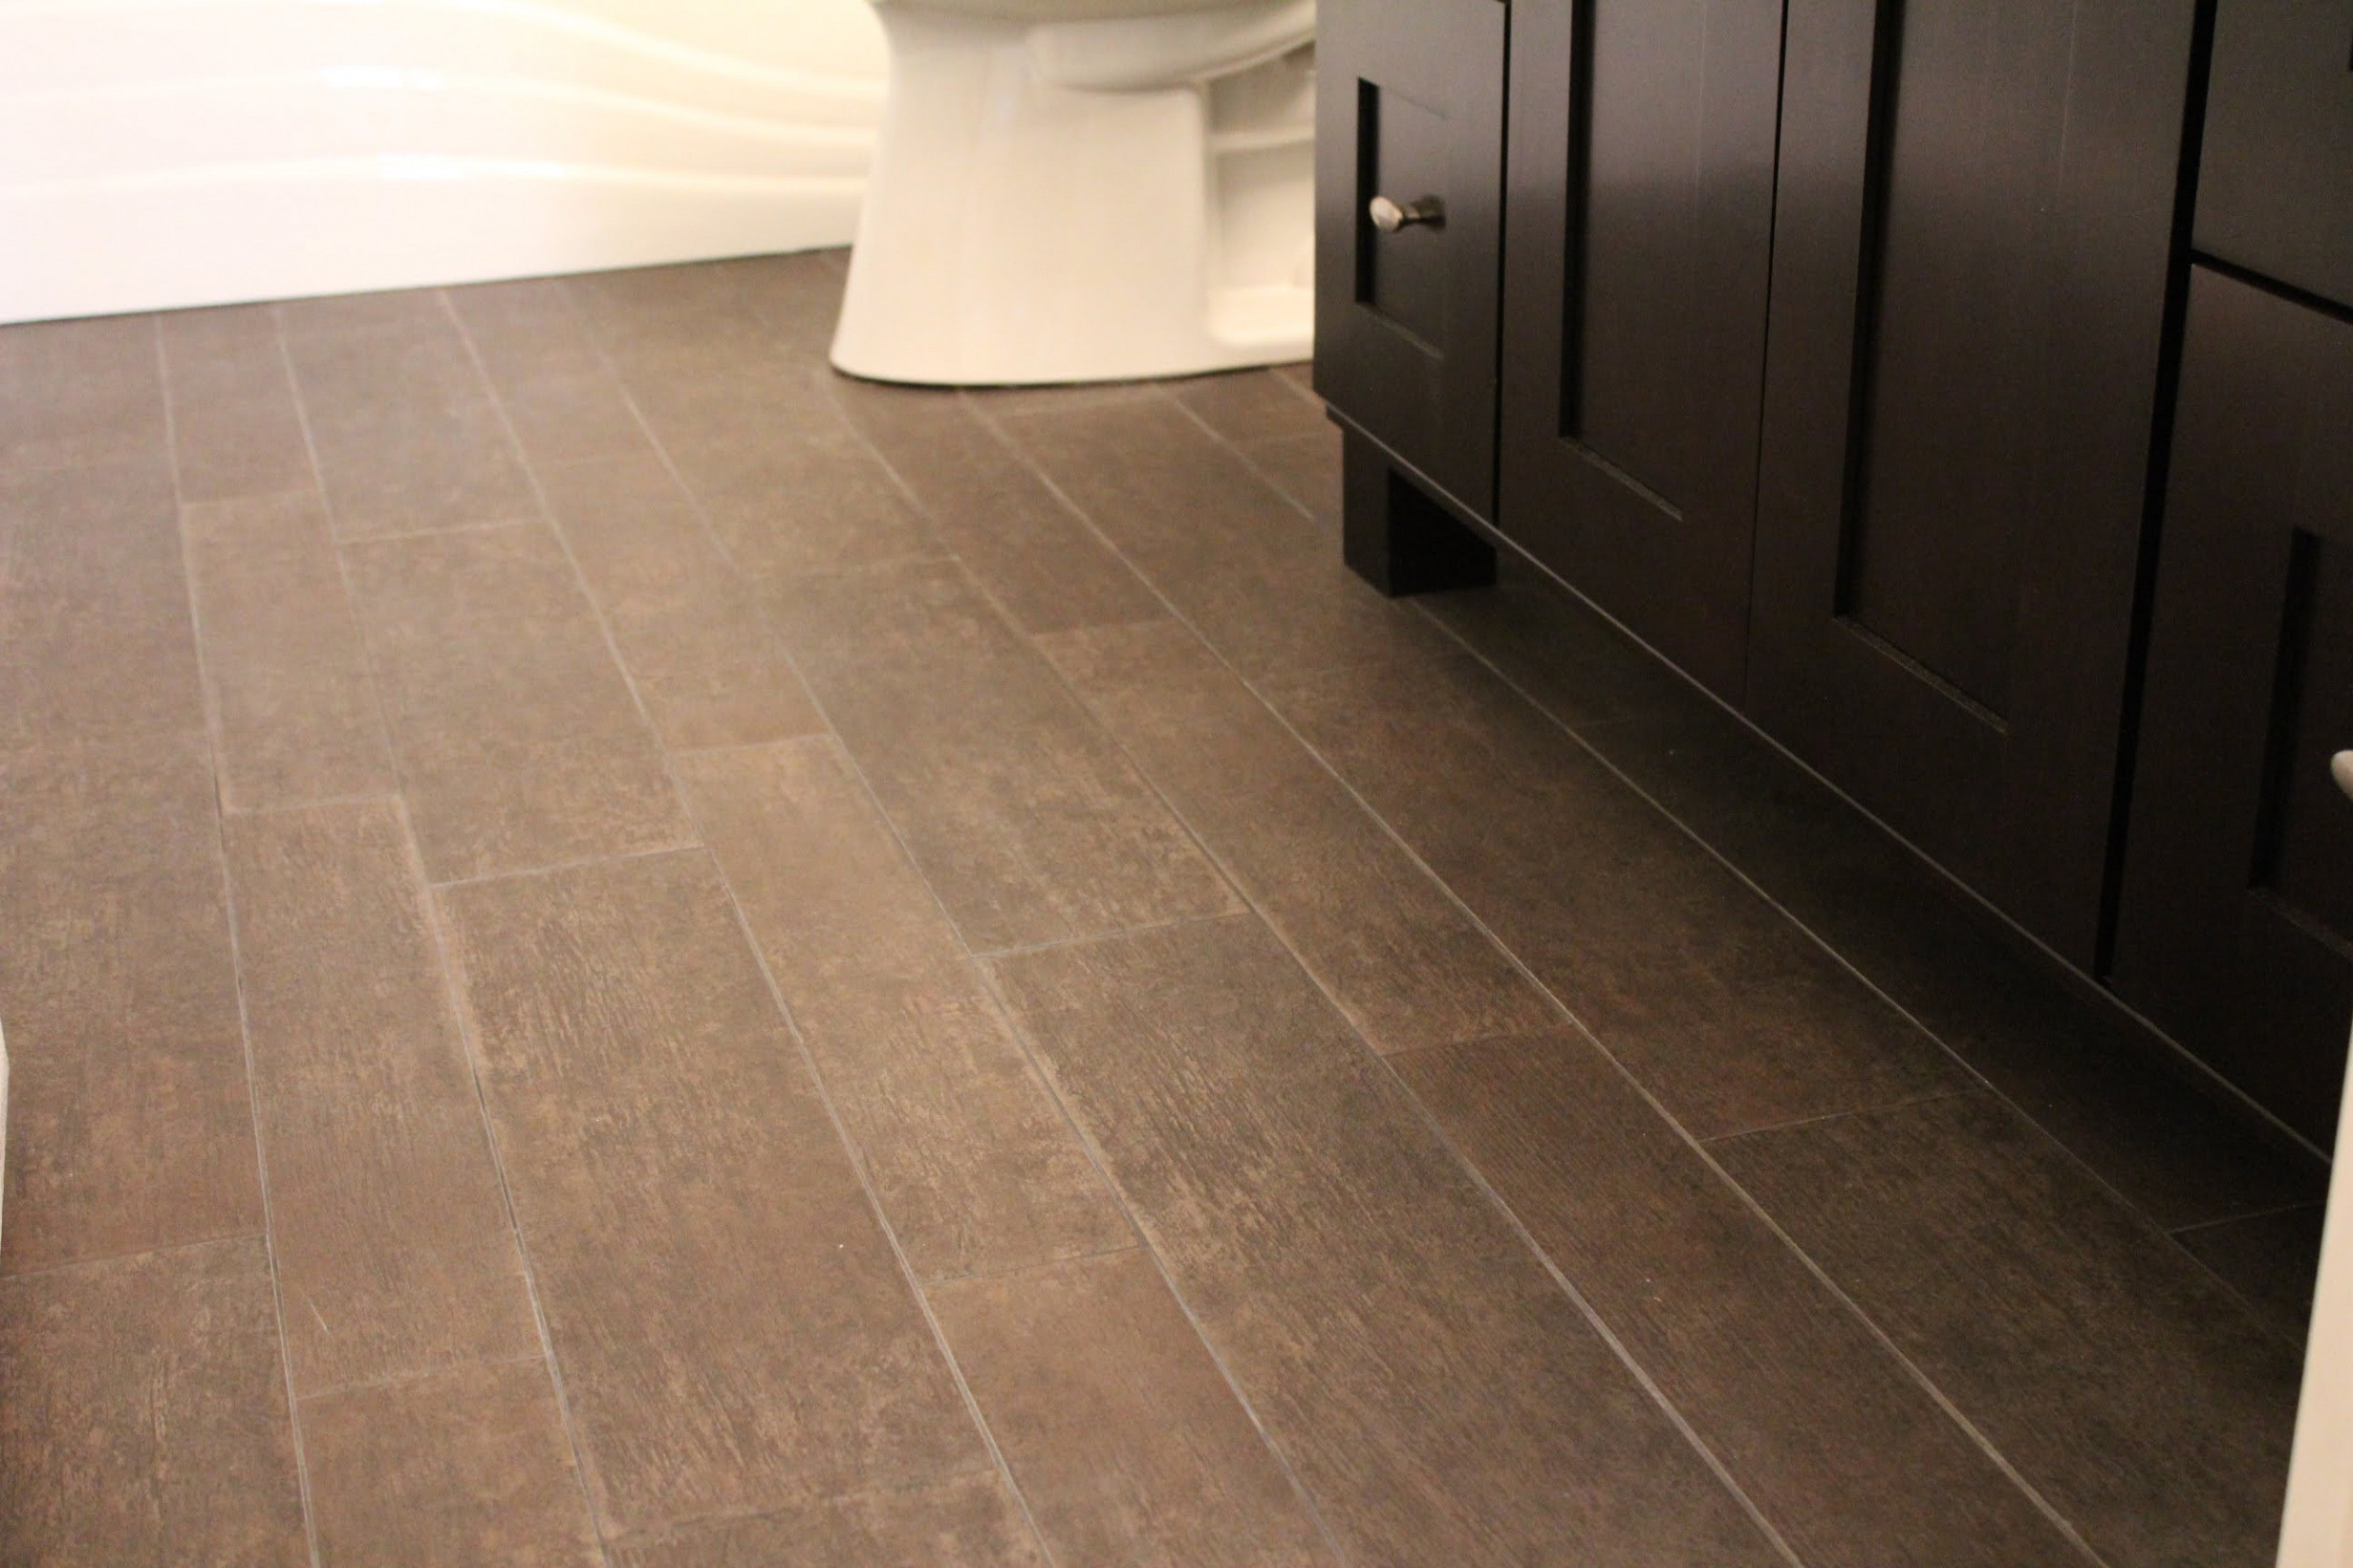 hardwood floor tile in bathroom of tile that looks like hardwood laminate floor tiles for bathroom inside tile that looks like hardwood laminate floor tiles for bathroom elegant od floor tile transition